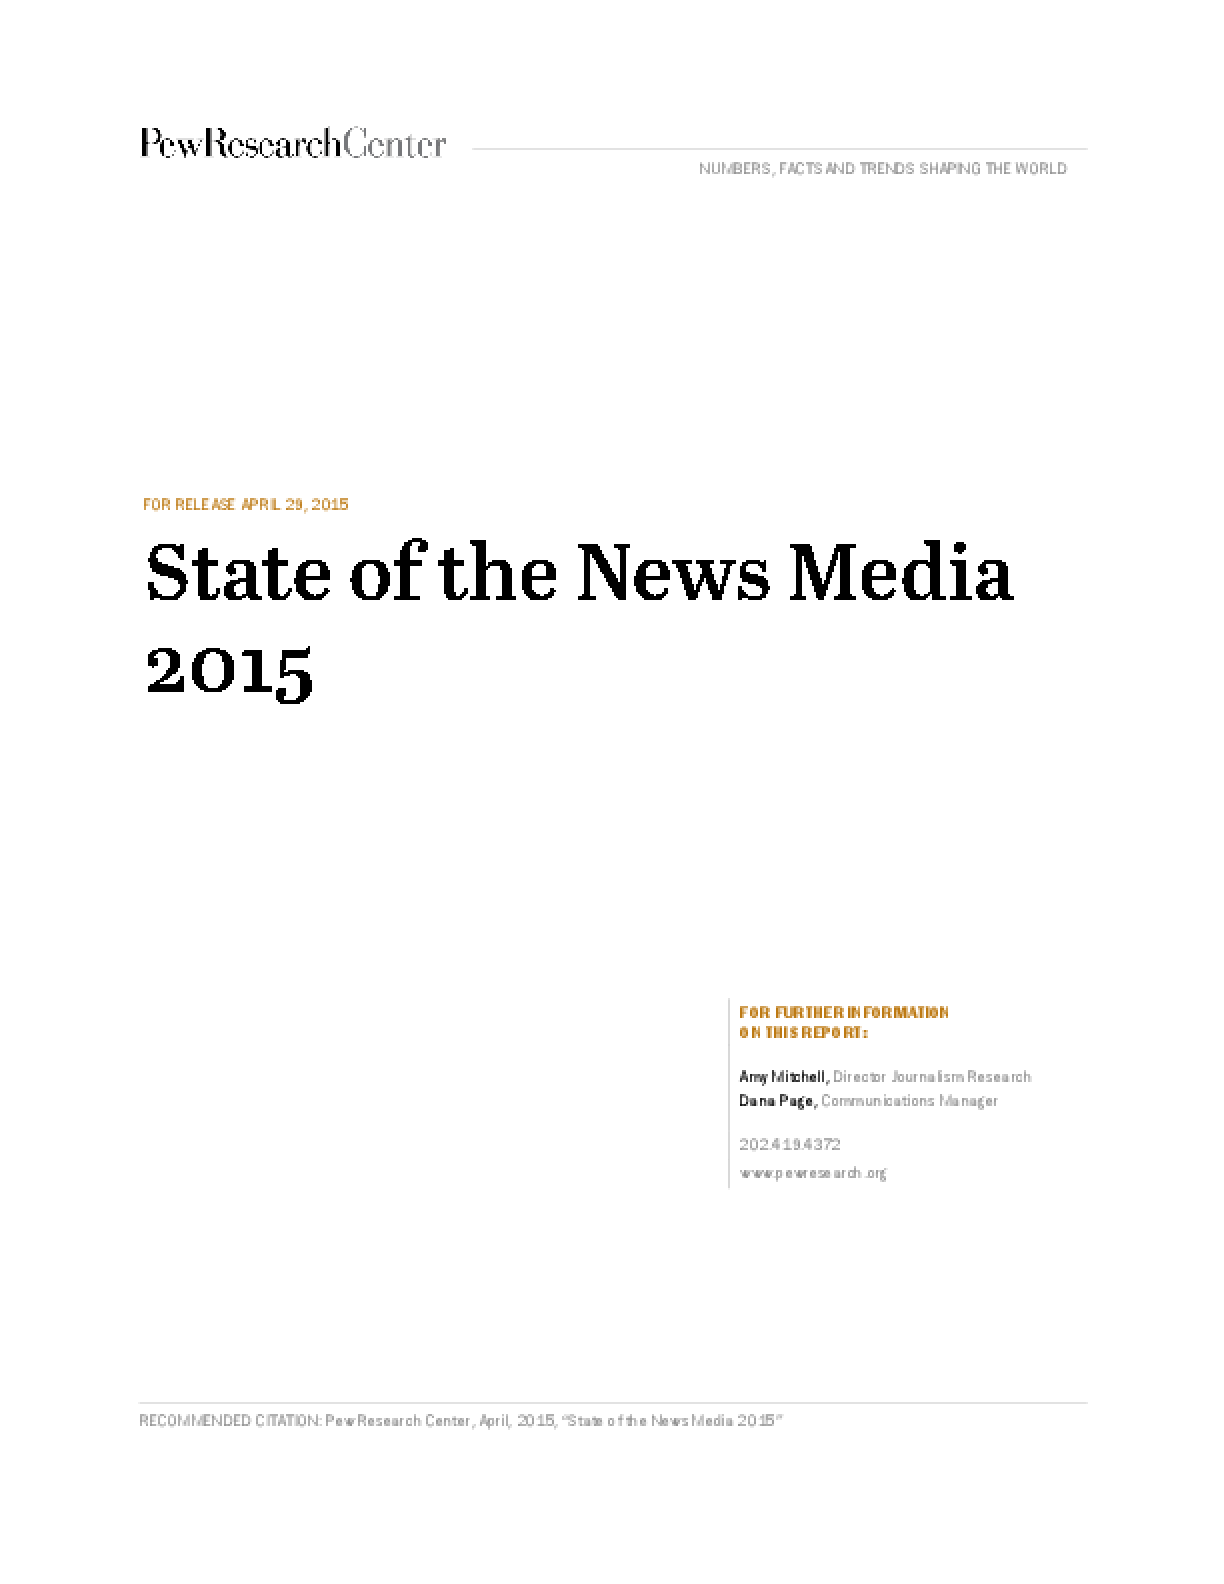 State of the News Media 2016: Network News - Fact Sheet